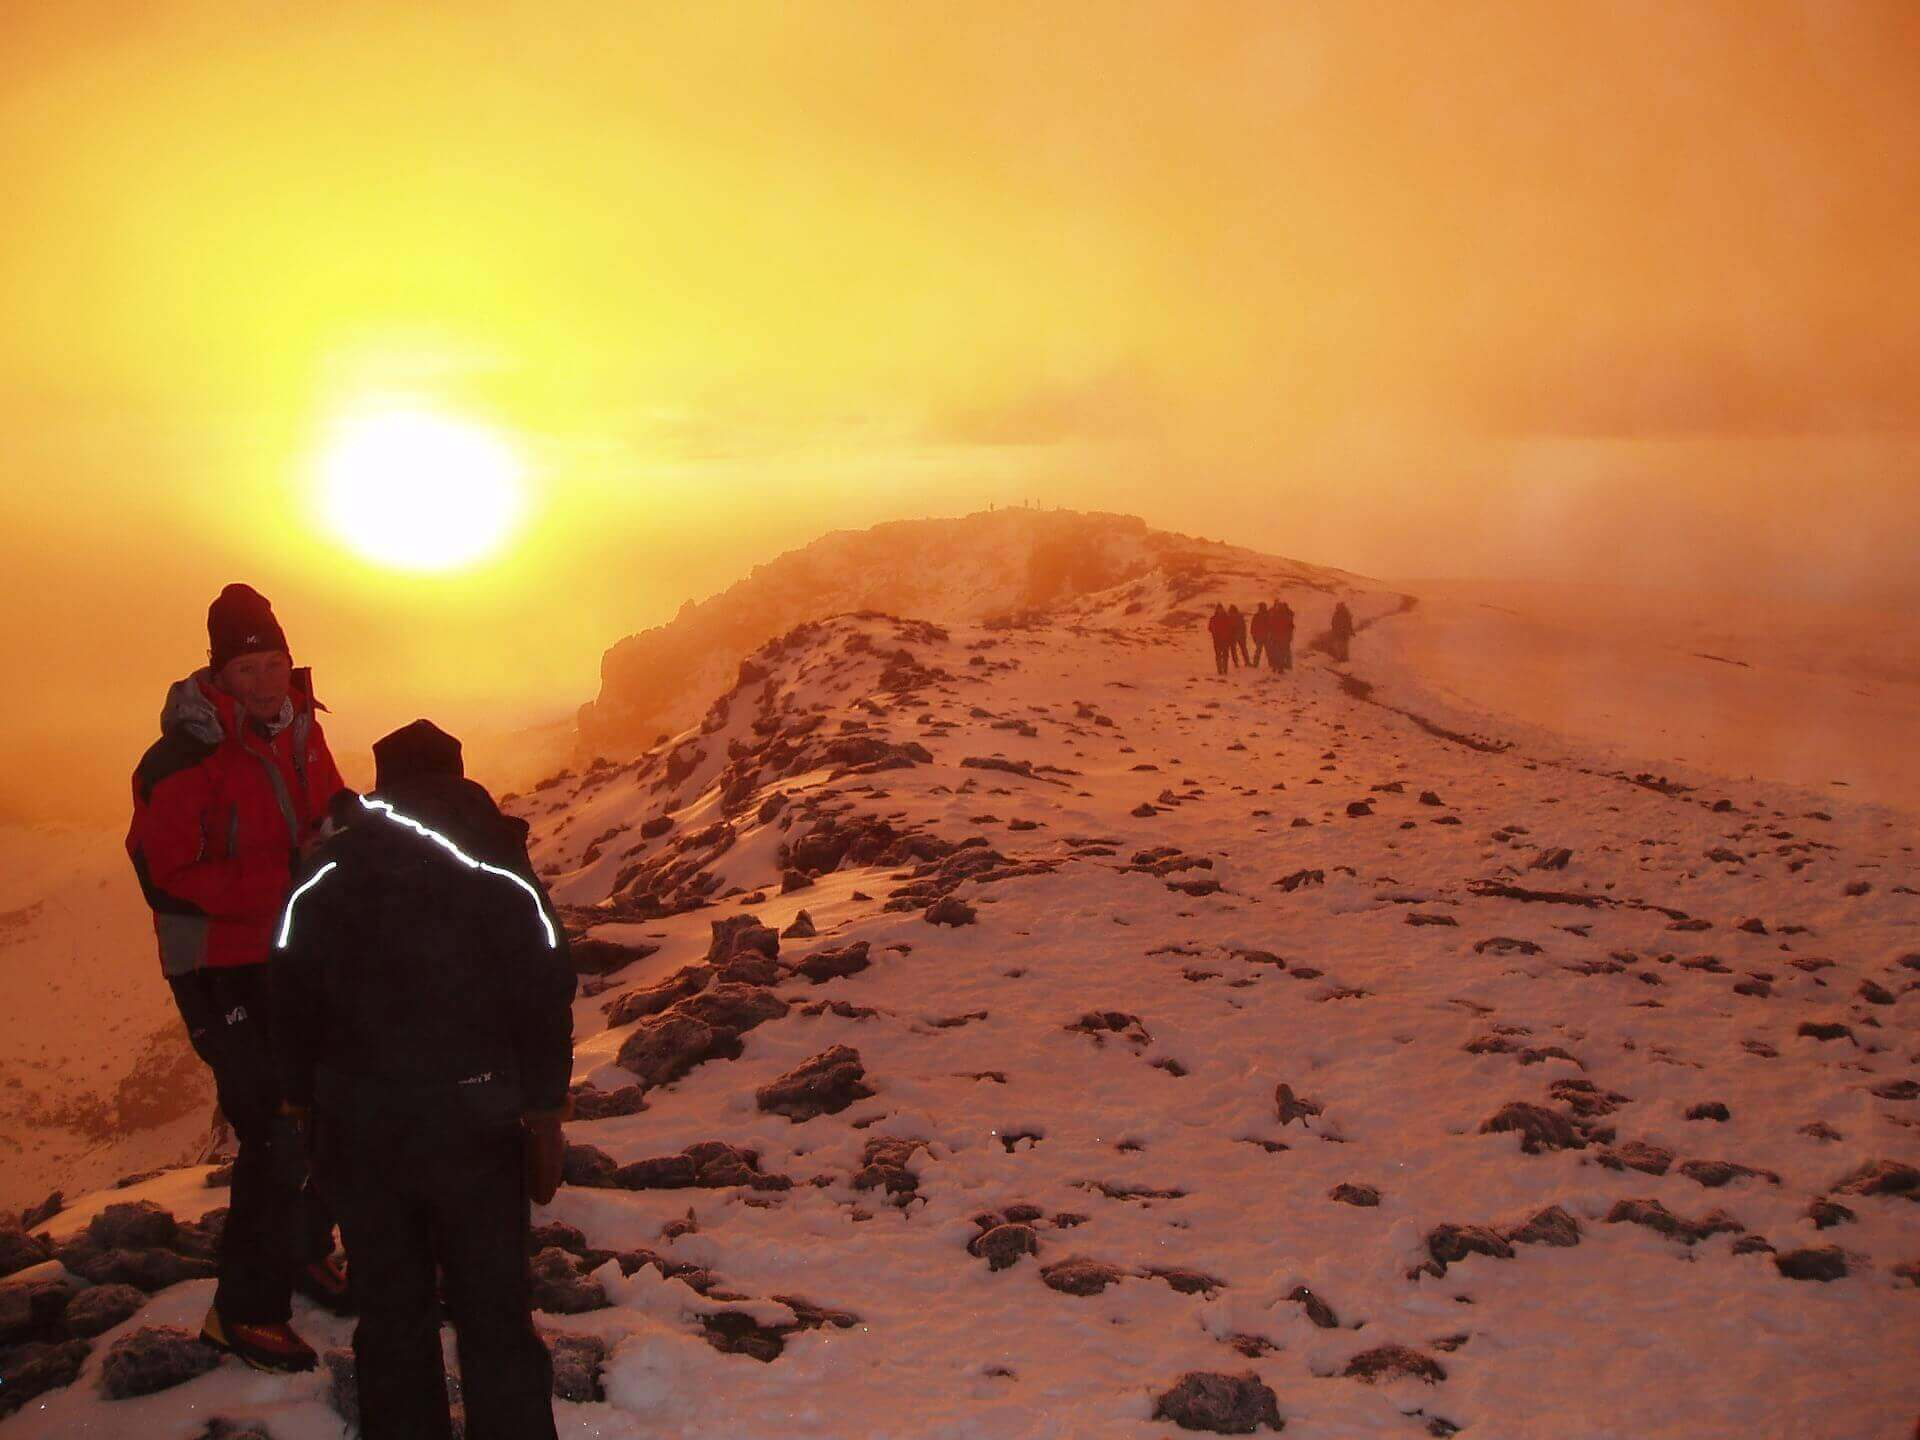 Mount Kilimanjaro trekking to sunrise summit